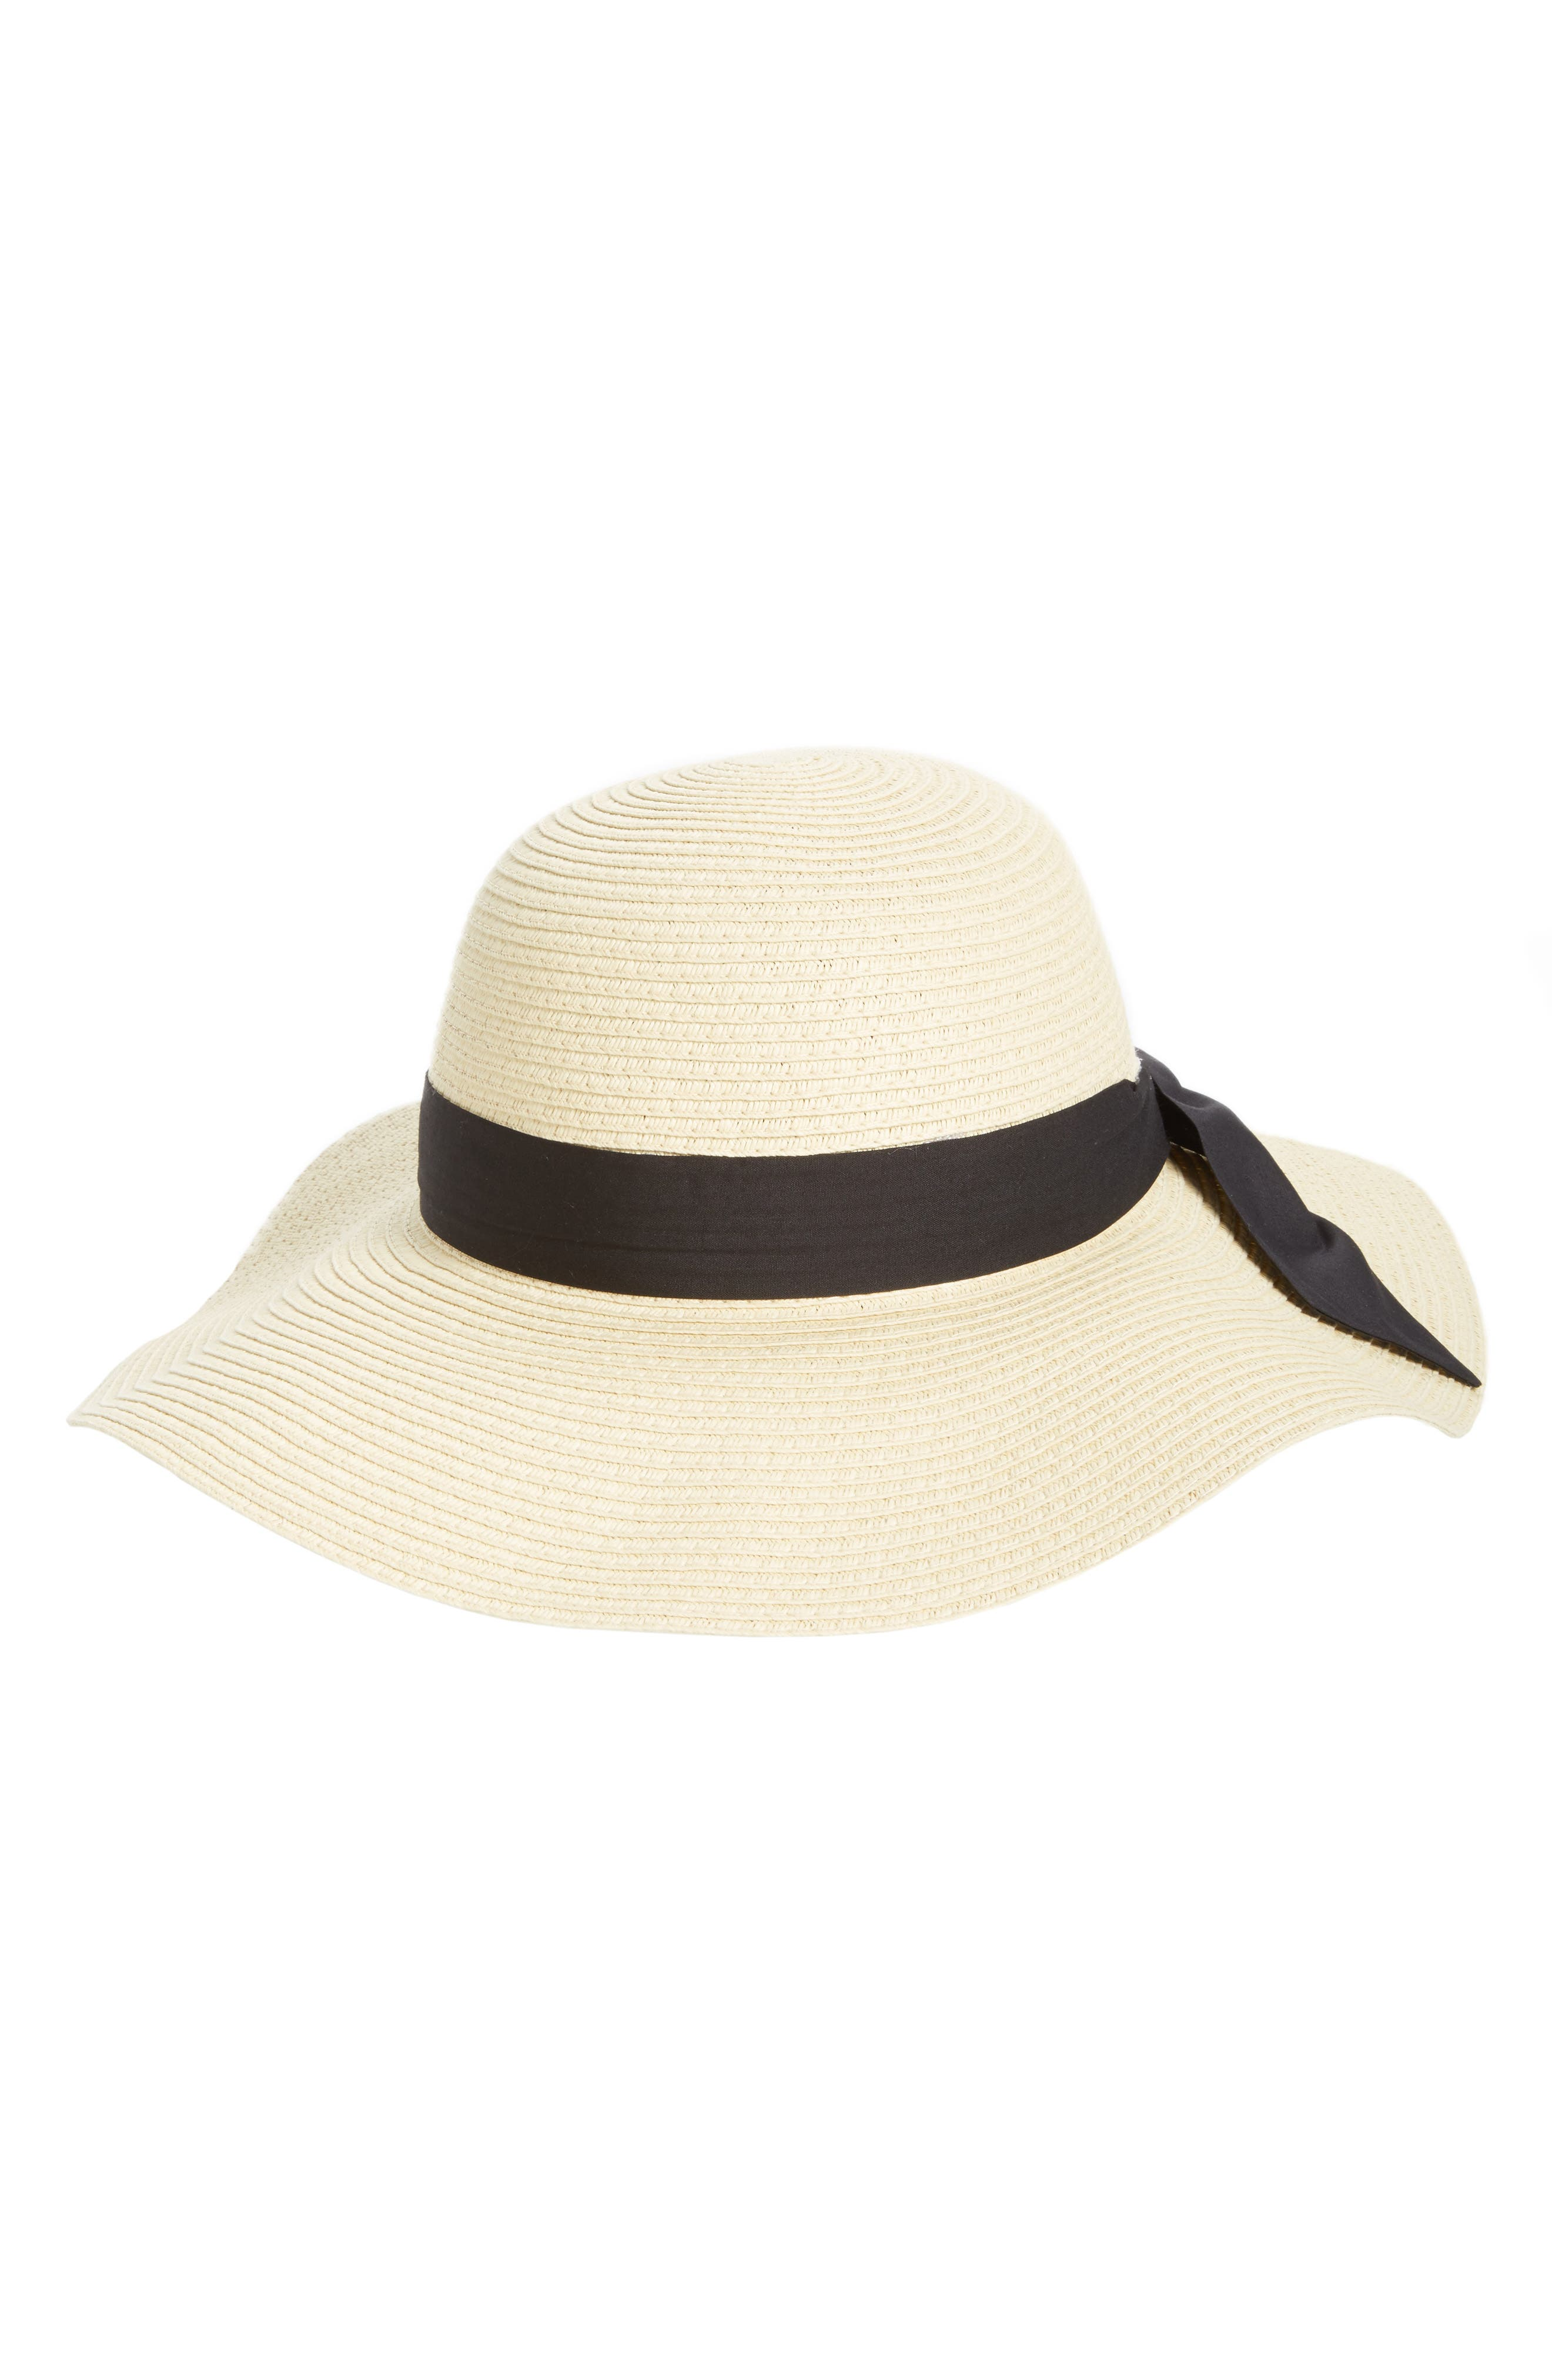 Bow Band Floppy Straw Hat,                         Main,                         color, 260